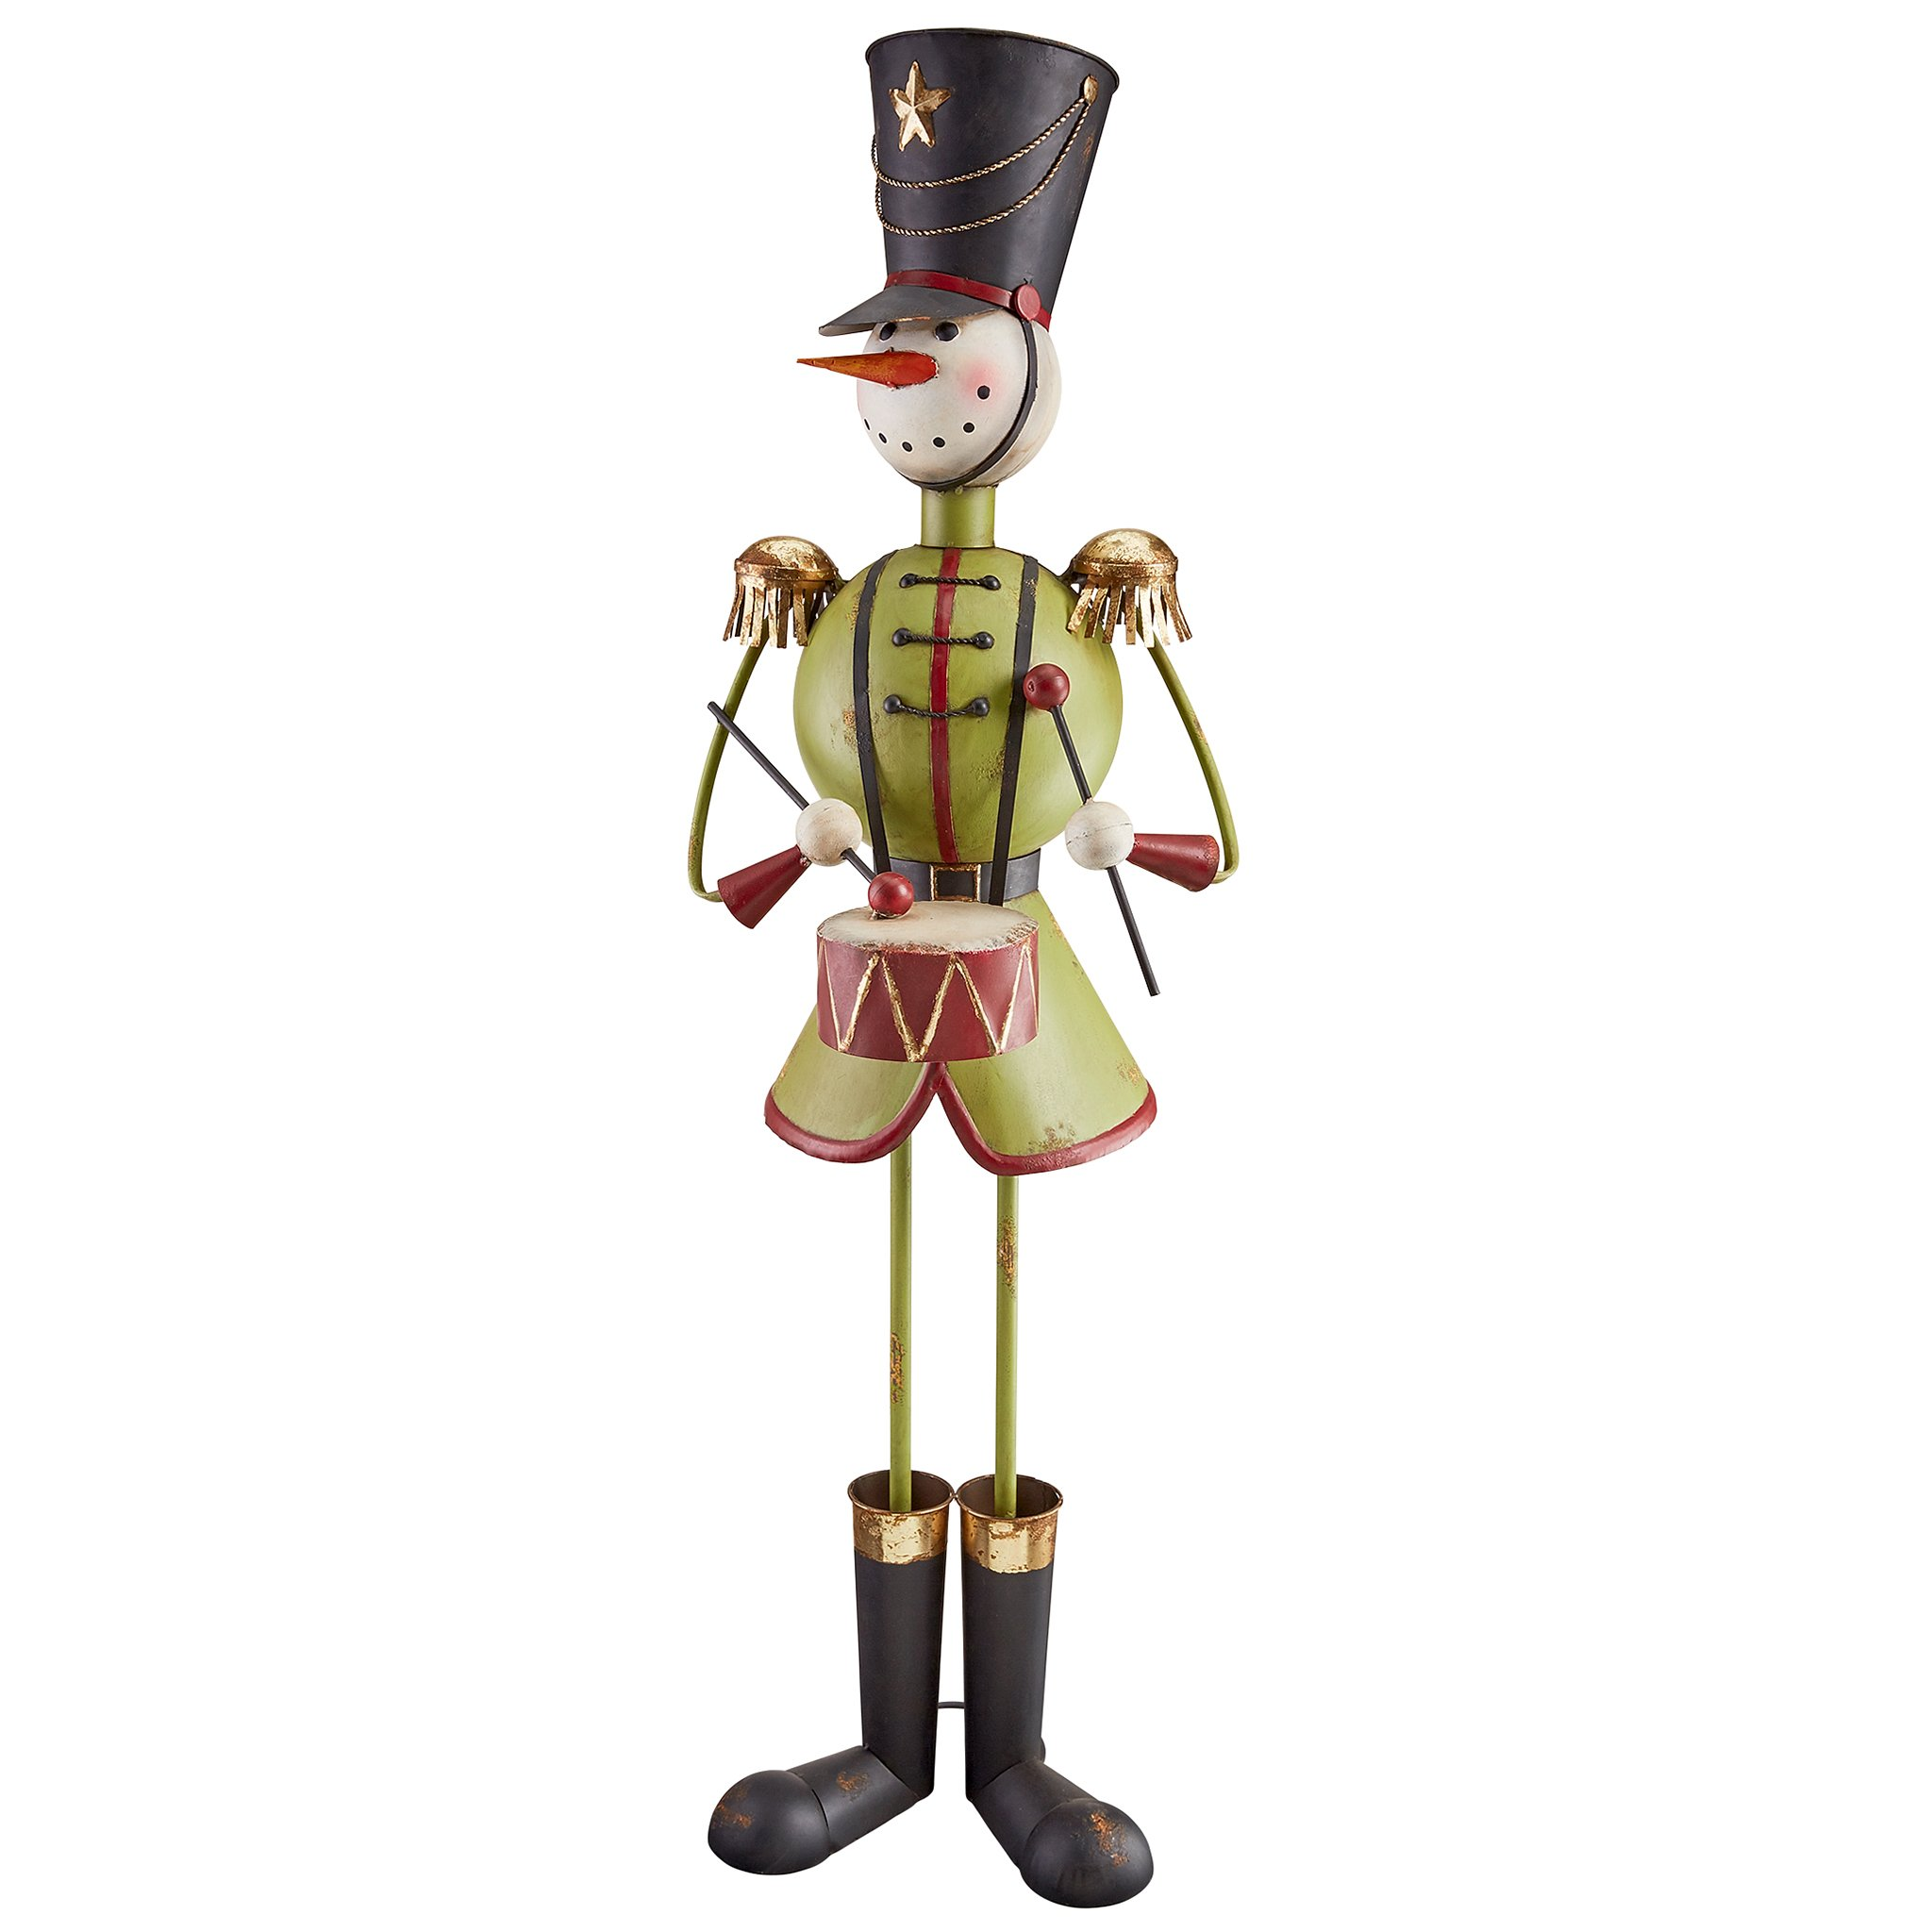 Christmas Decorations - North Pole Snowman Band Metal Holiday Decor Statue: Drummer Boy